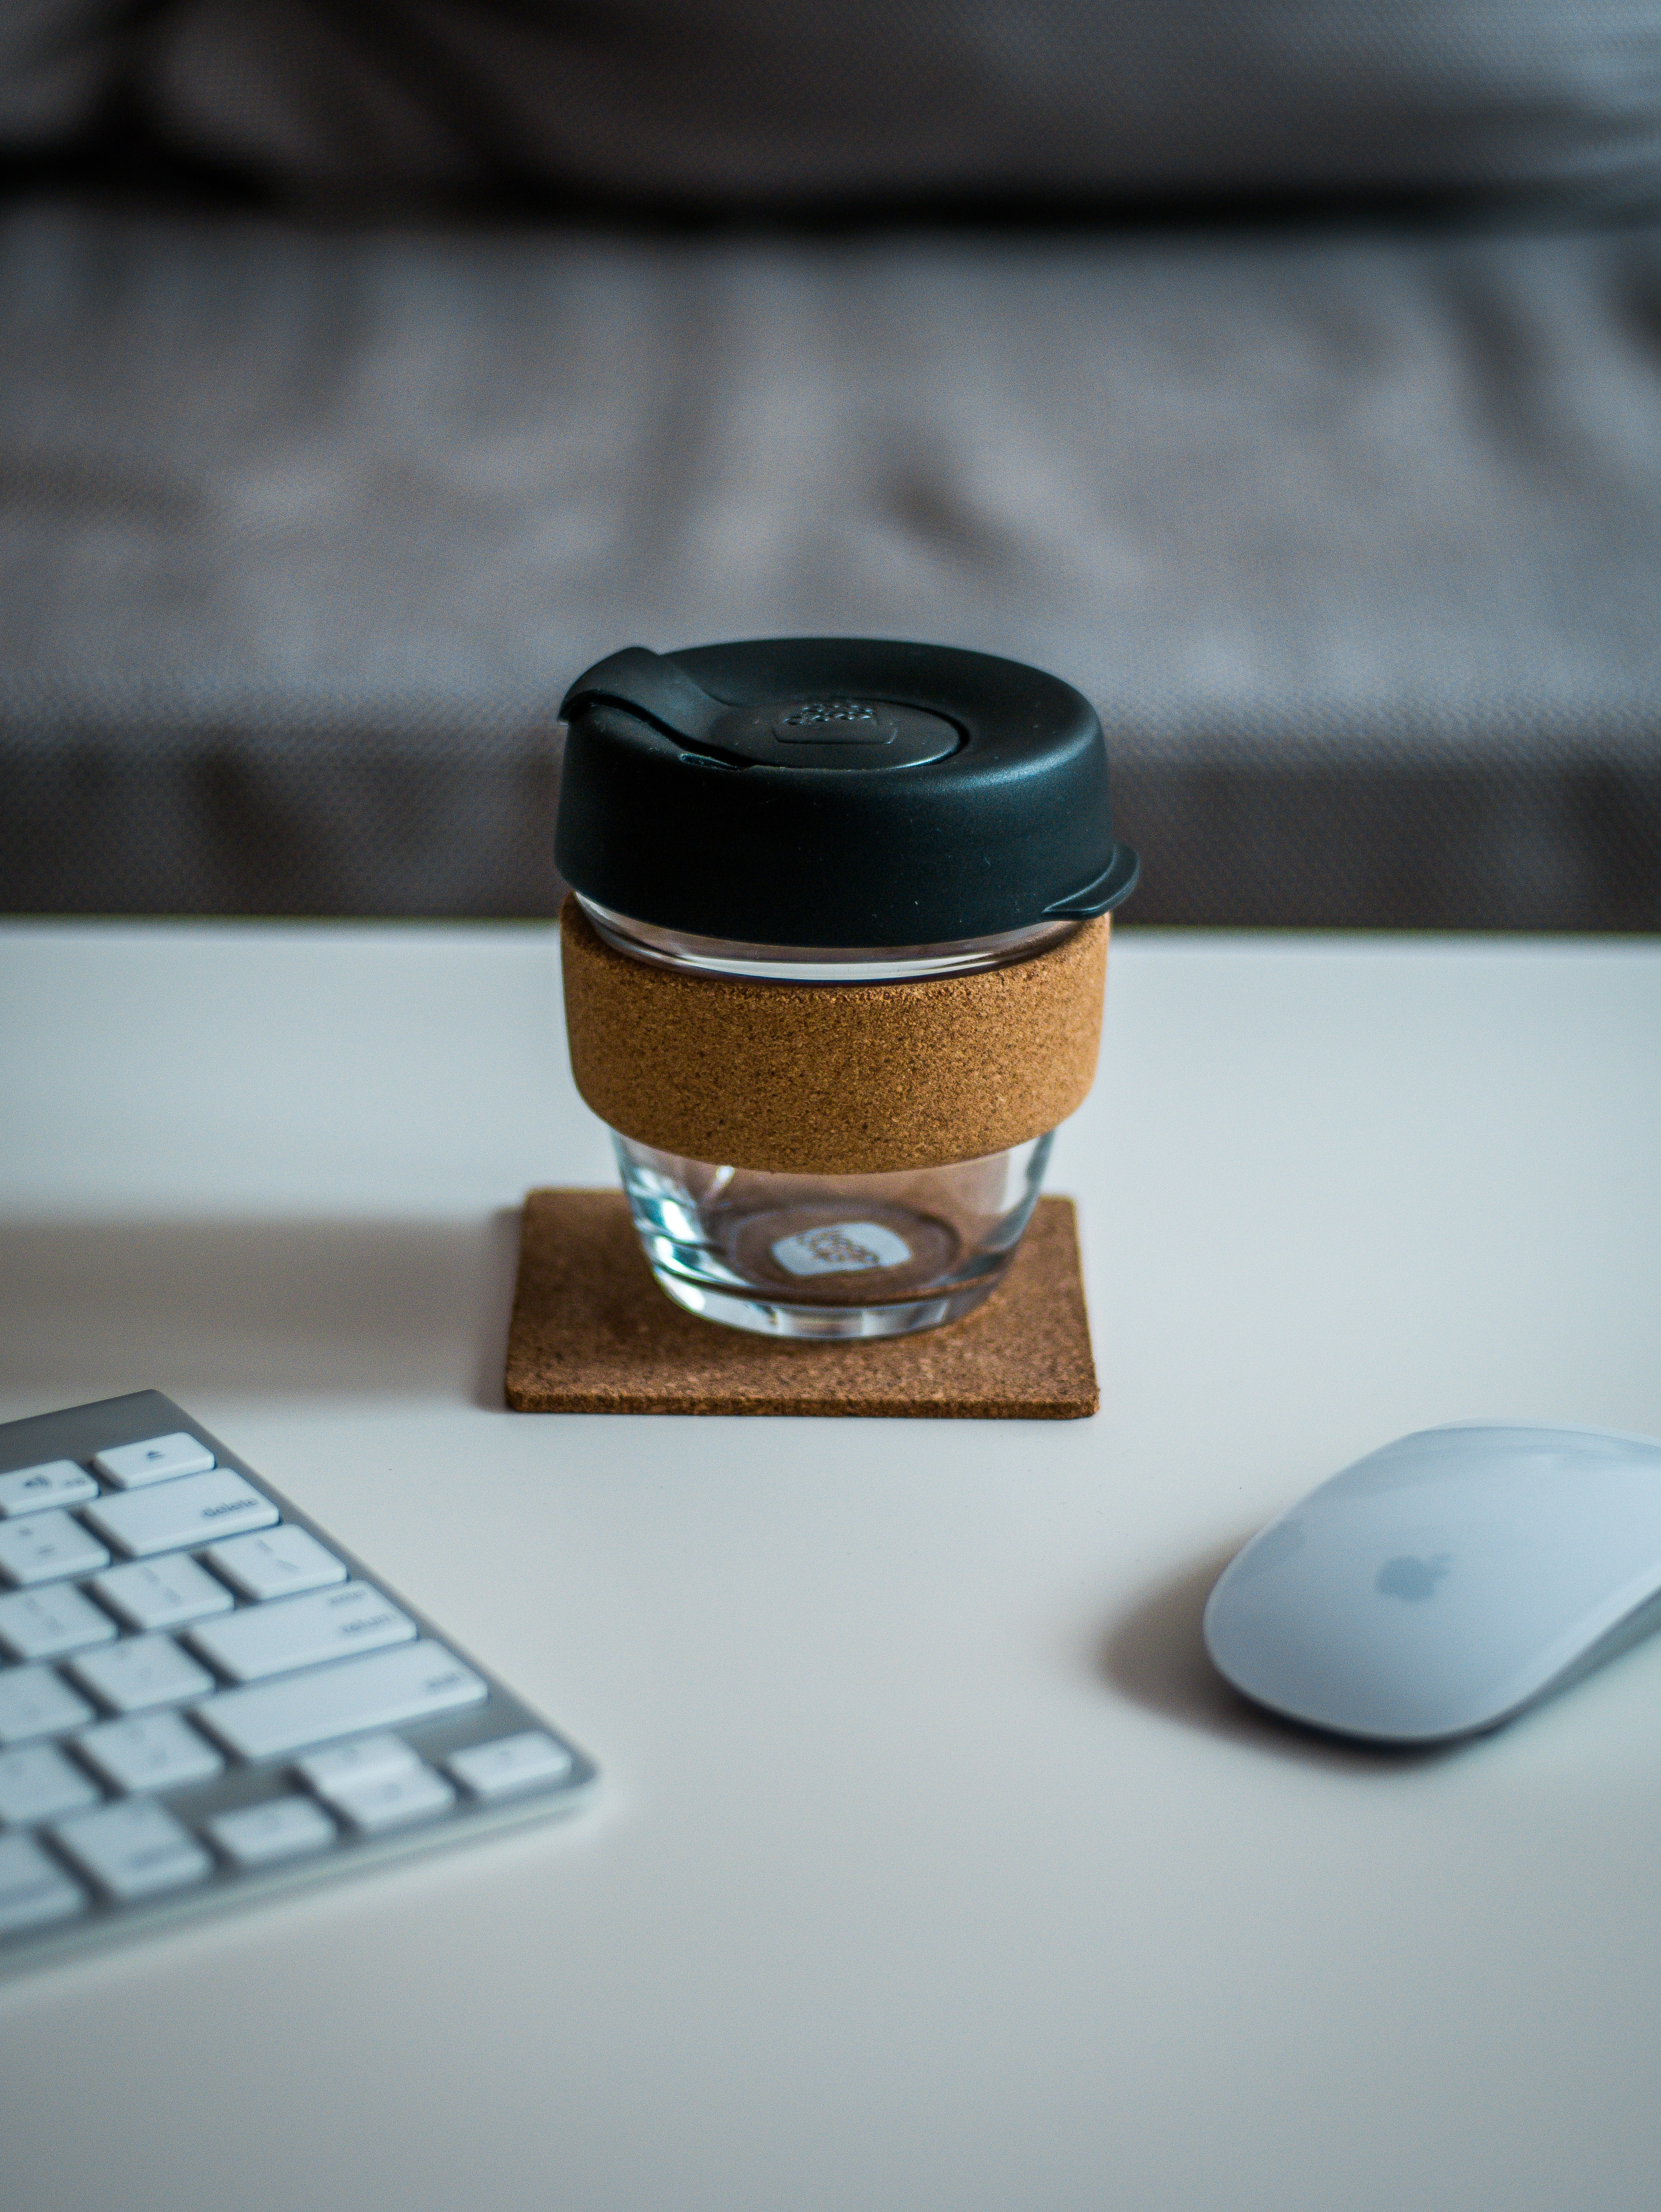 covered jar between Magic Mouse and Keyboard on desk